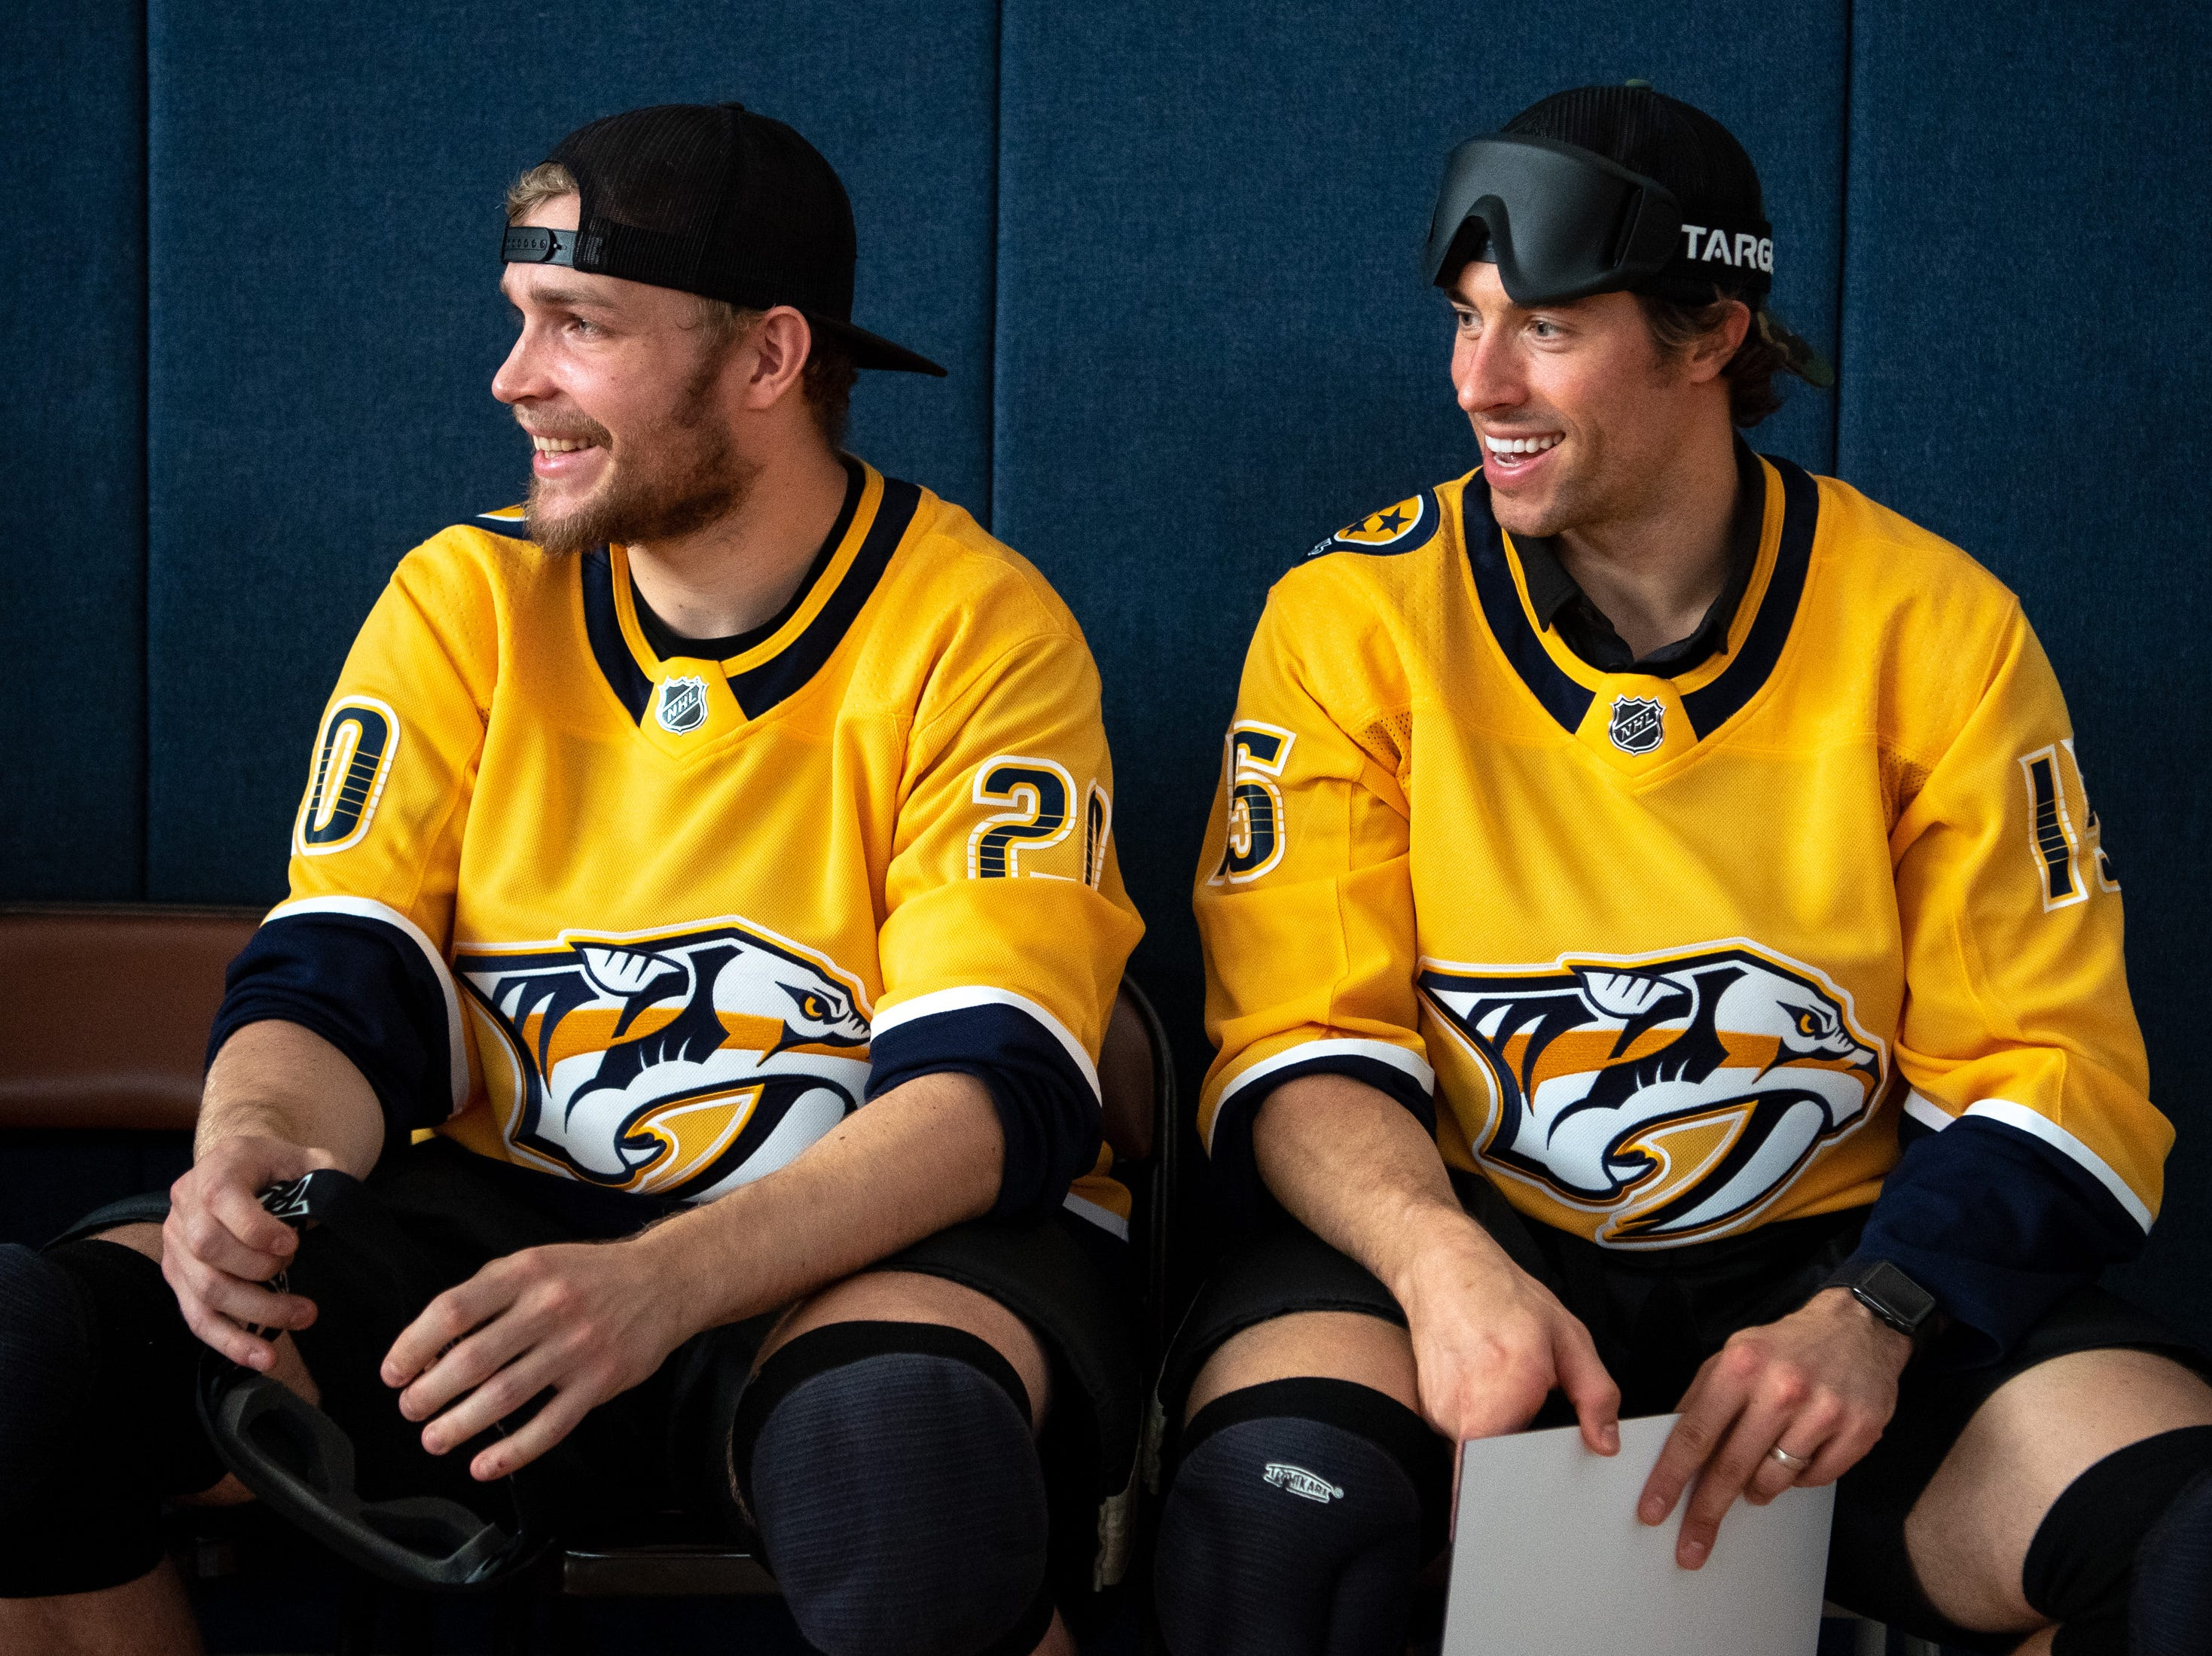 Nashville Predators forward Miikka Salomaki (20) and forward Craig Smith (15) watch a game of goalball at the Tennessee School for the Blind in Nashville, Tenn., Monday, Oct. 8, 2018. Goalball is a sport designed specifically for athletes with vision impairment.